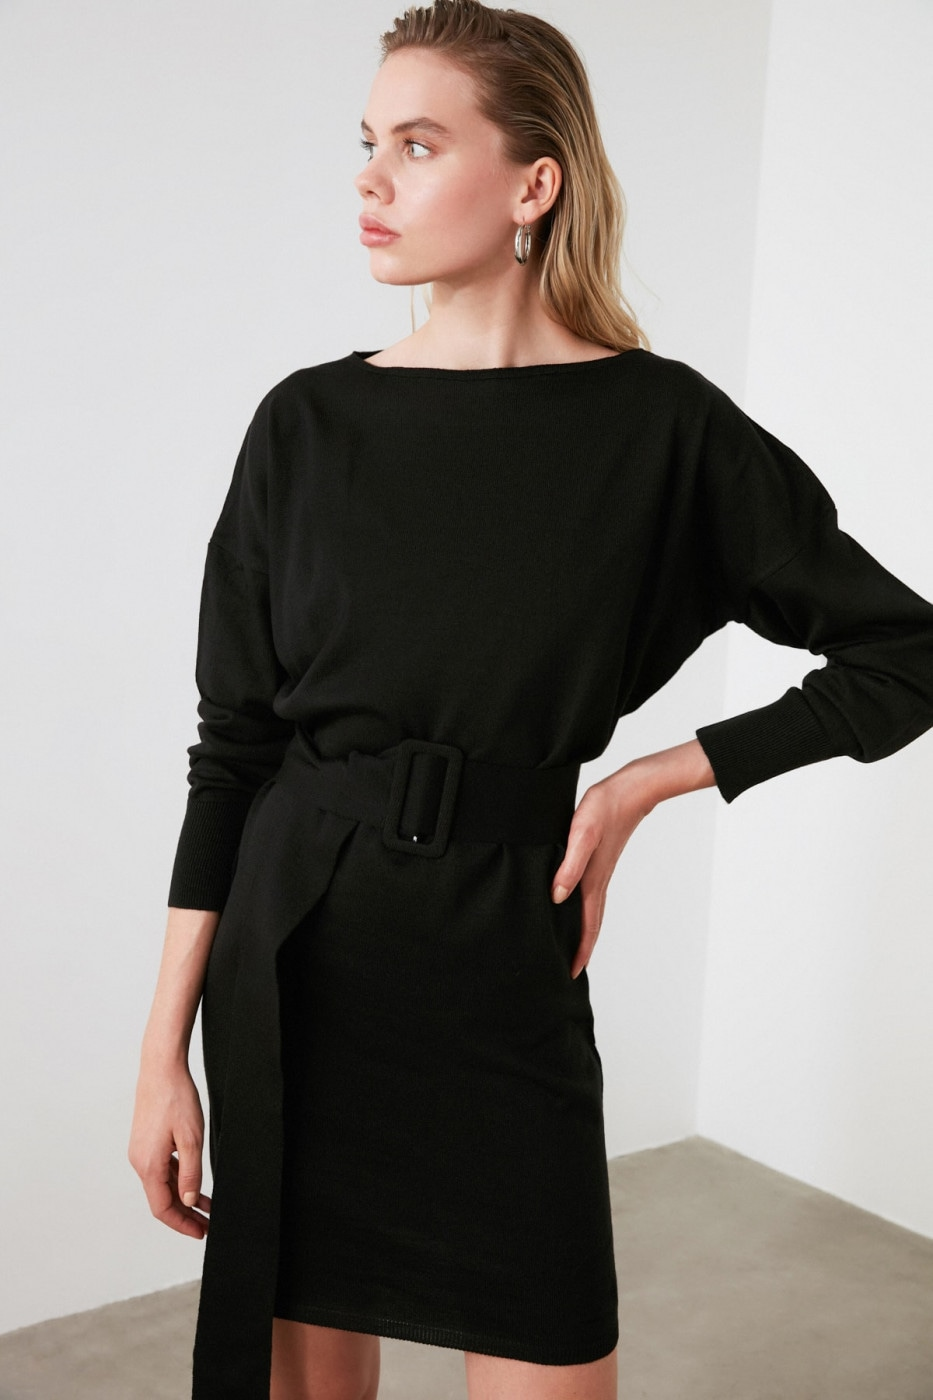 Trendyol Black BeltKwear Dress